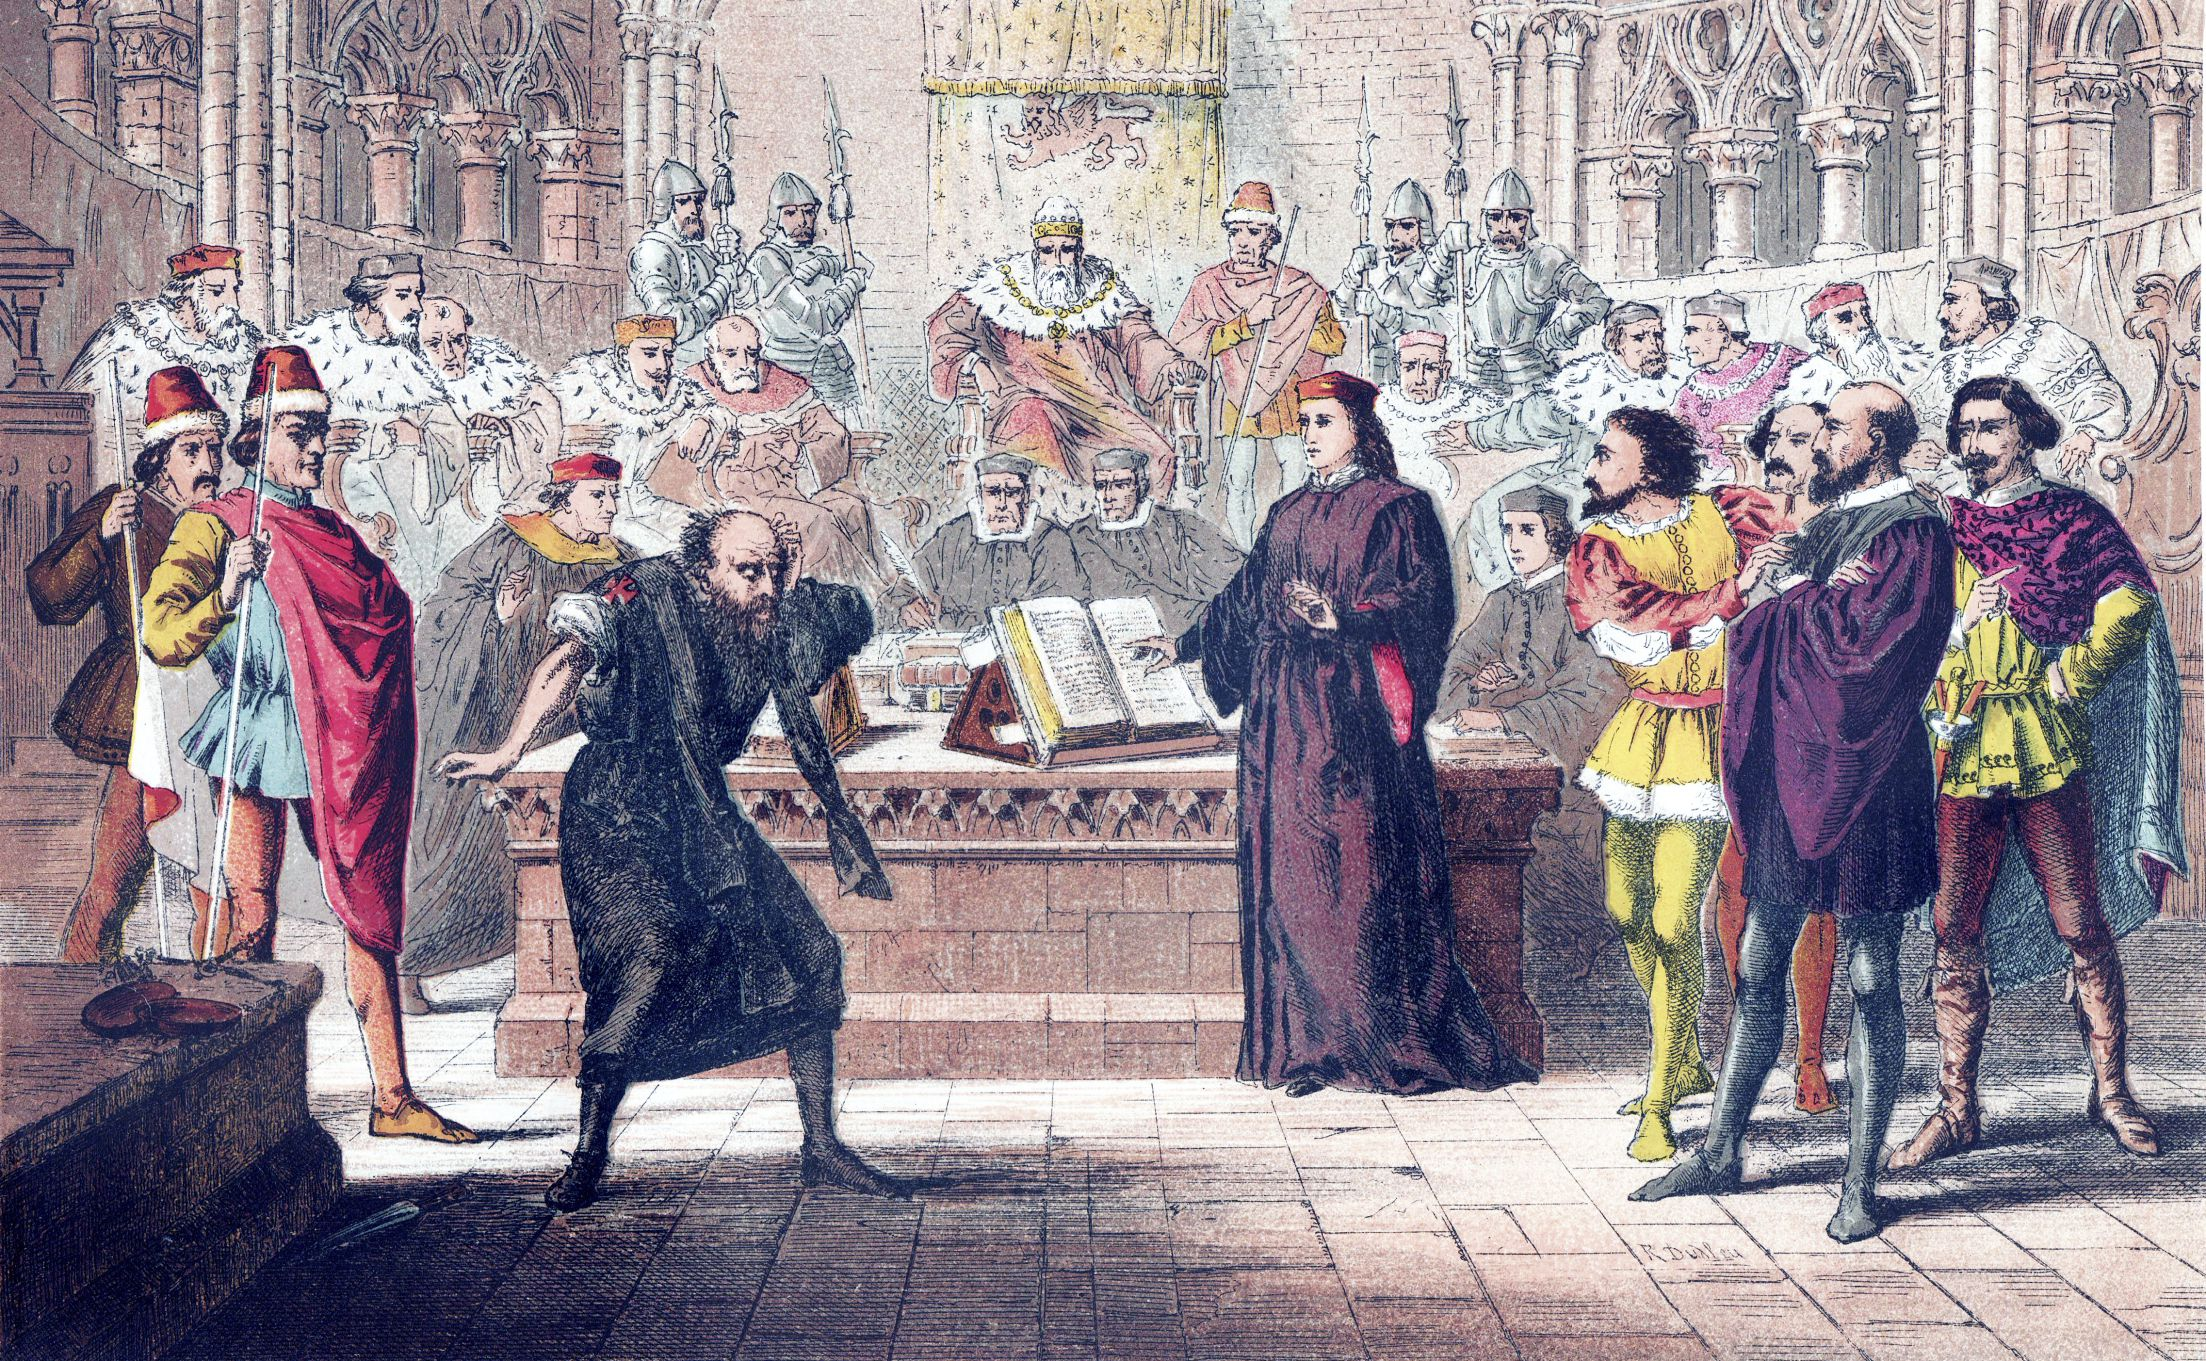 an analysis of the character of shylock the jew in shakespeares play the merchant of venice Prejudice and revenge in shakespeare's 'merchant of venice bassanio ask shylock, a jewish merchant of venice shylock character social analysis of merchant.